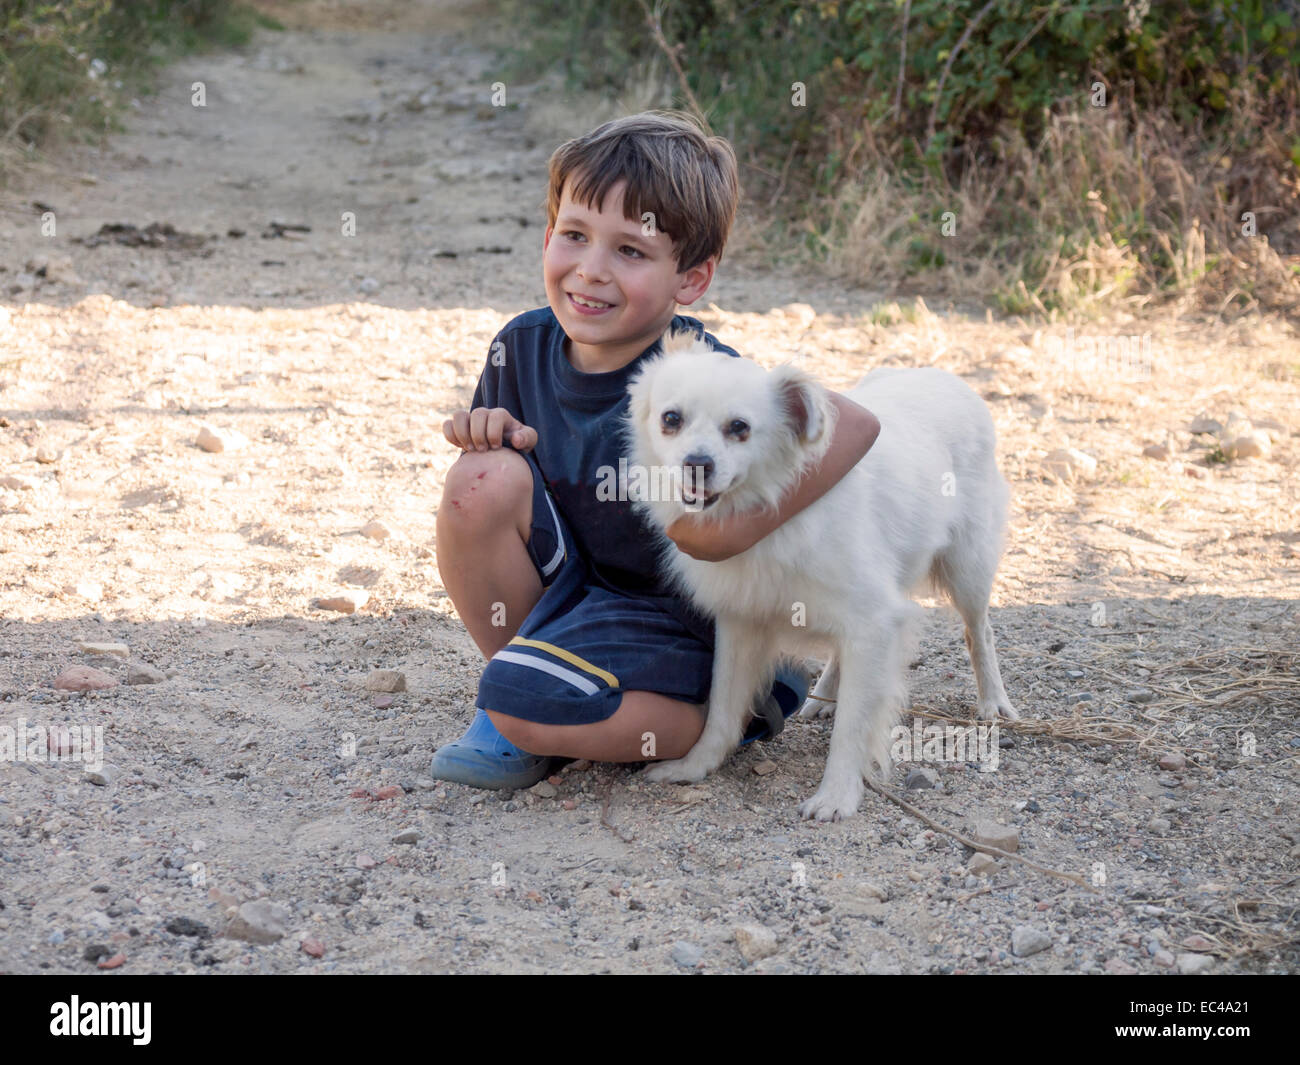 boy child with dog in the countryside - Stock Image